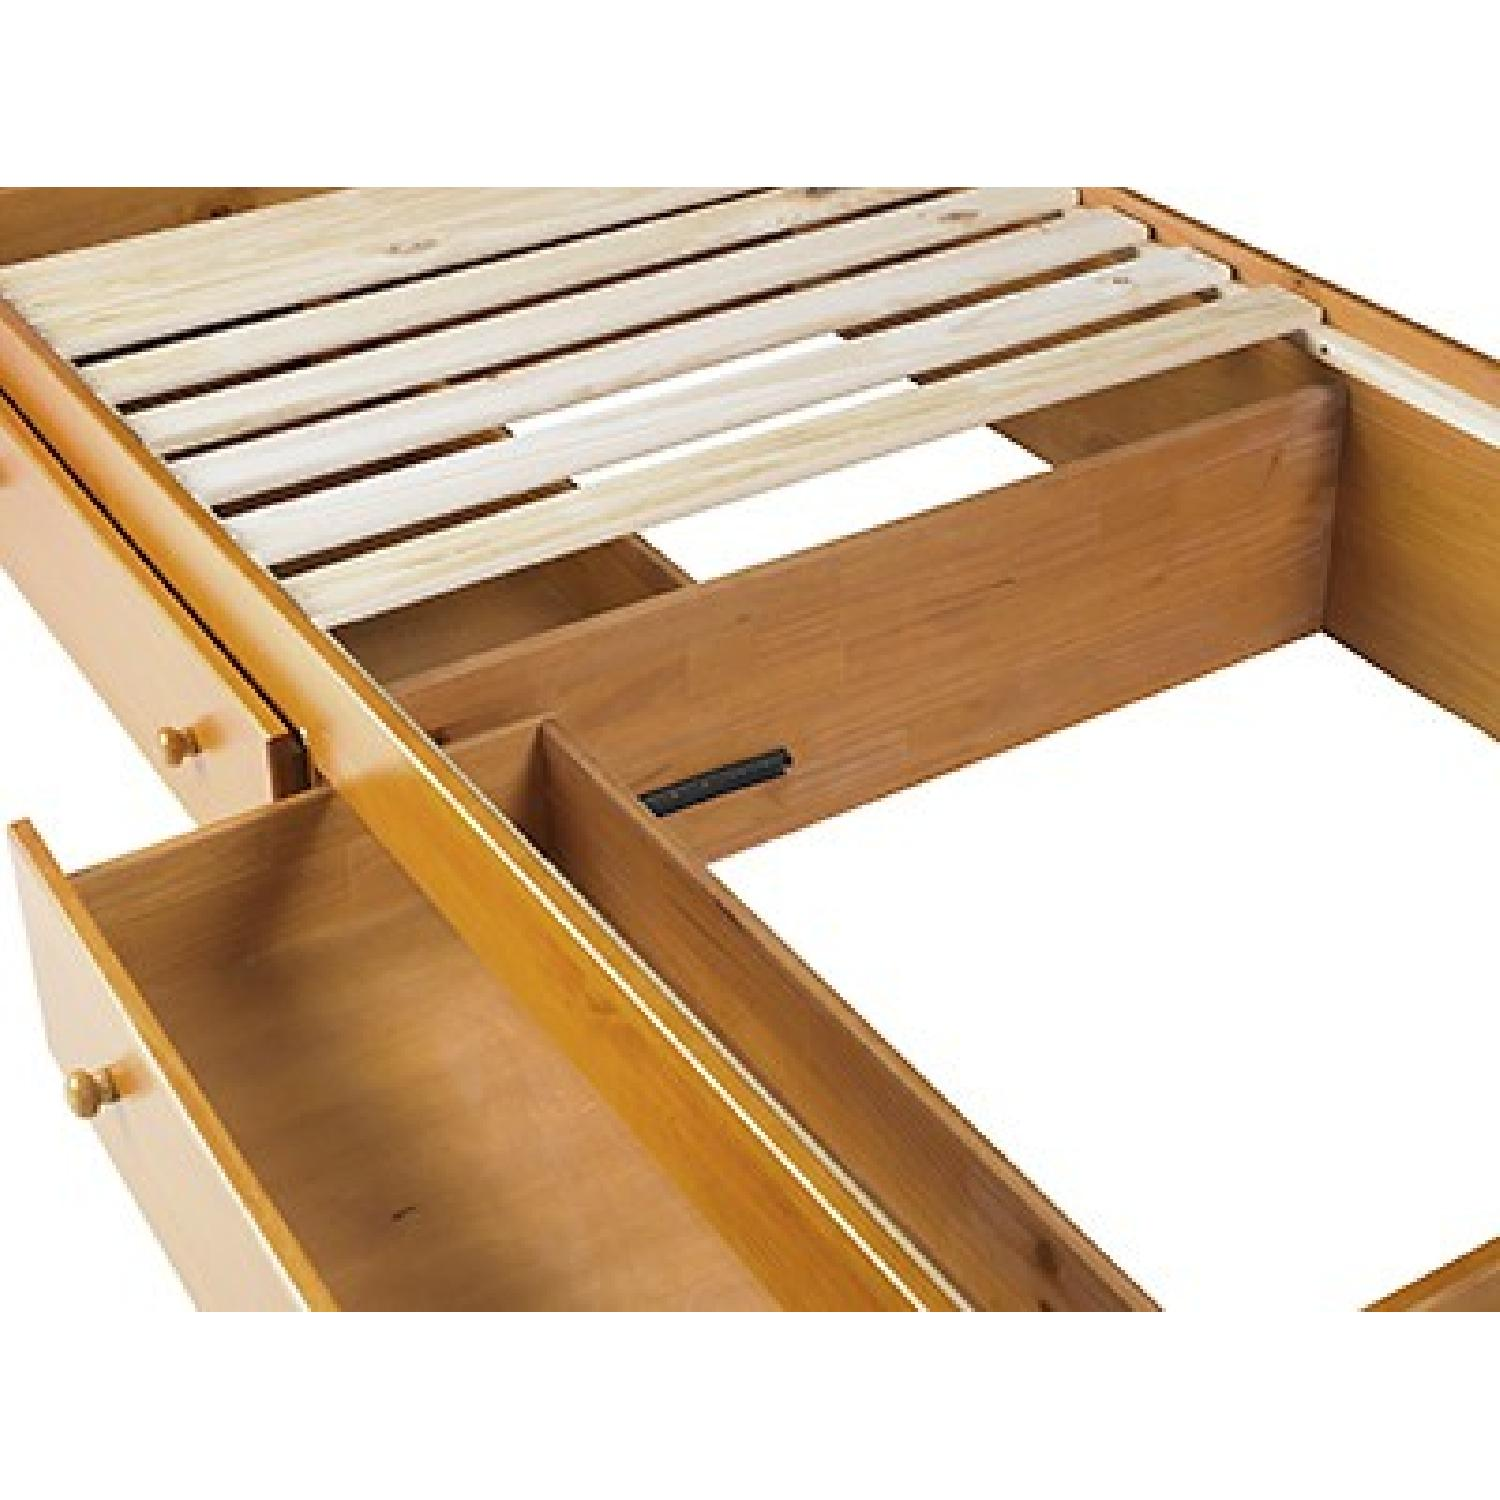 Full Size Solid Wood Bed in Honey Pine w/ Storage Drawers - image-12